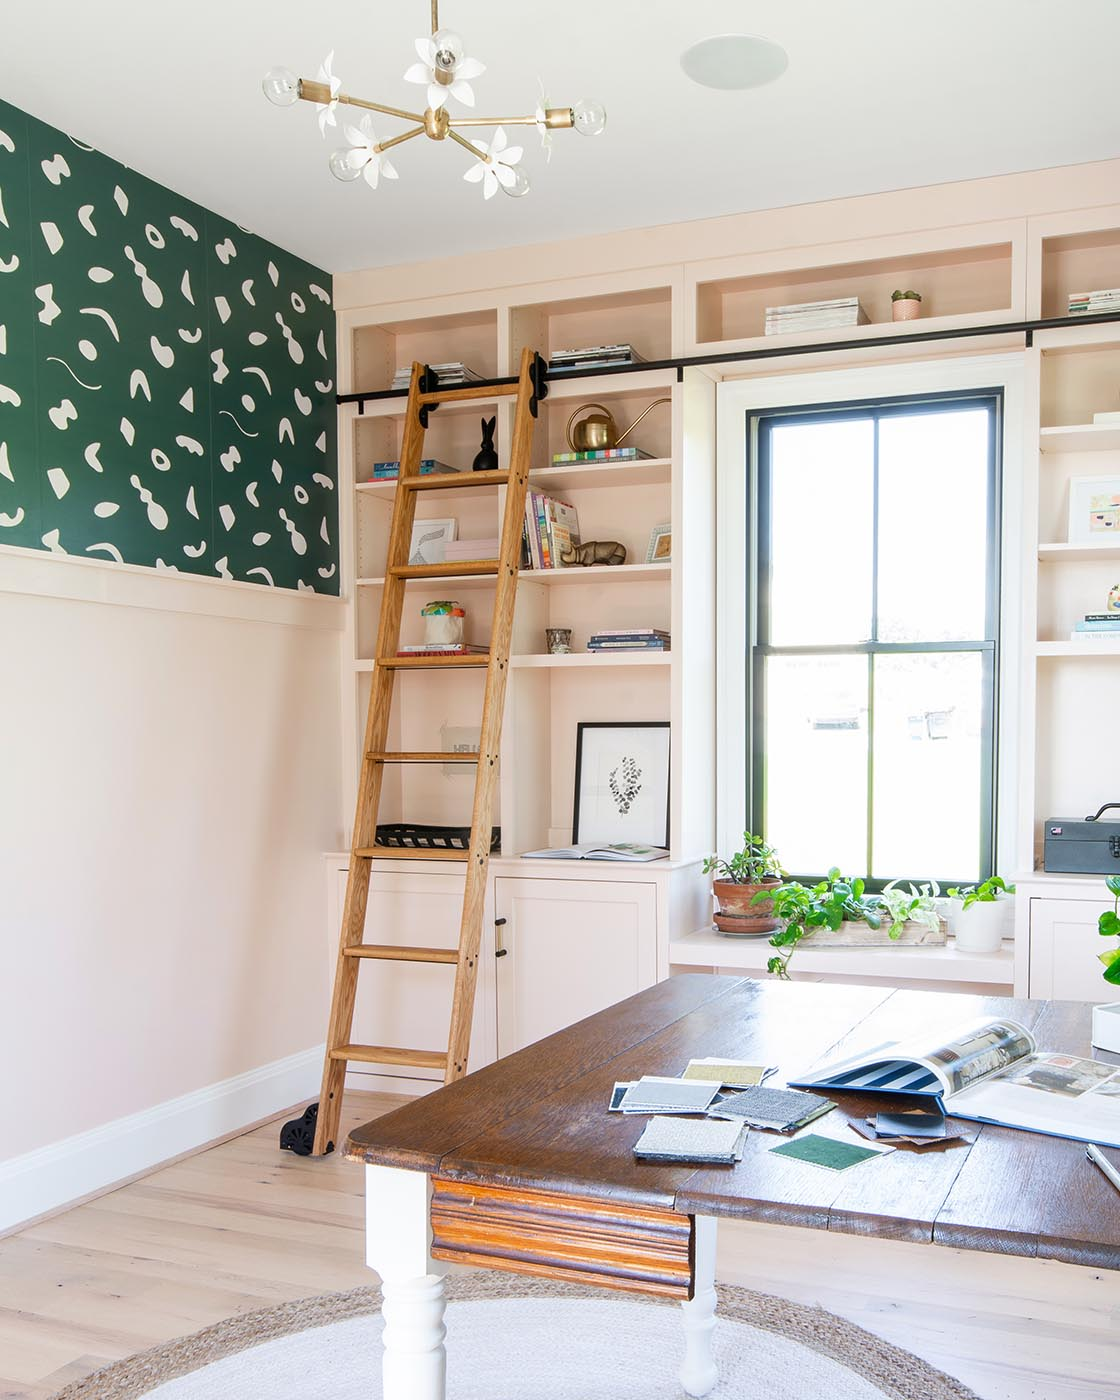 DIY built-in bookshelves brought much-needed storage to this stylish home office. See how the room went from totally bare to incredibly functional!